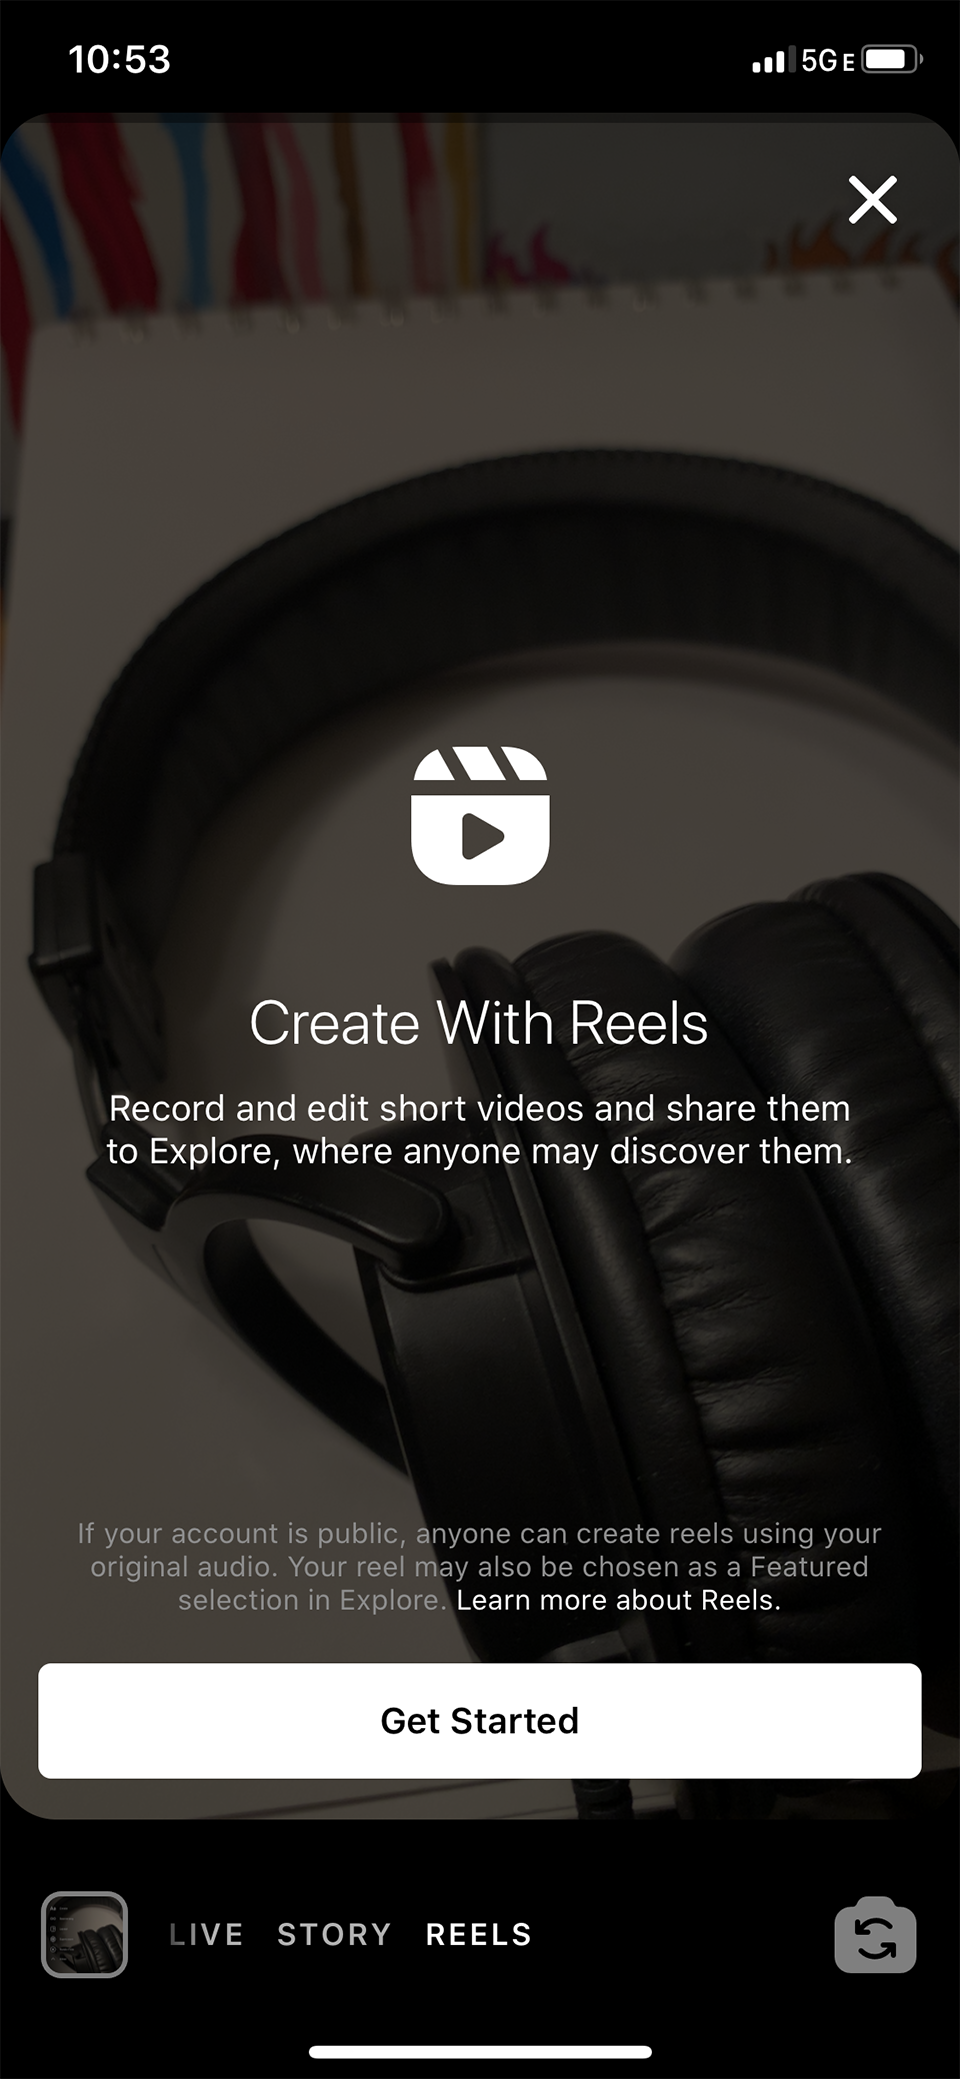 Get Started With Reels